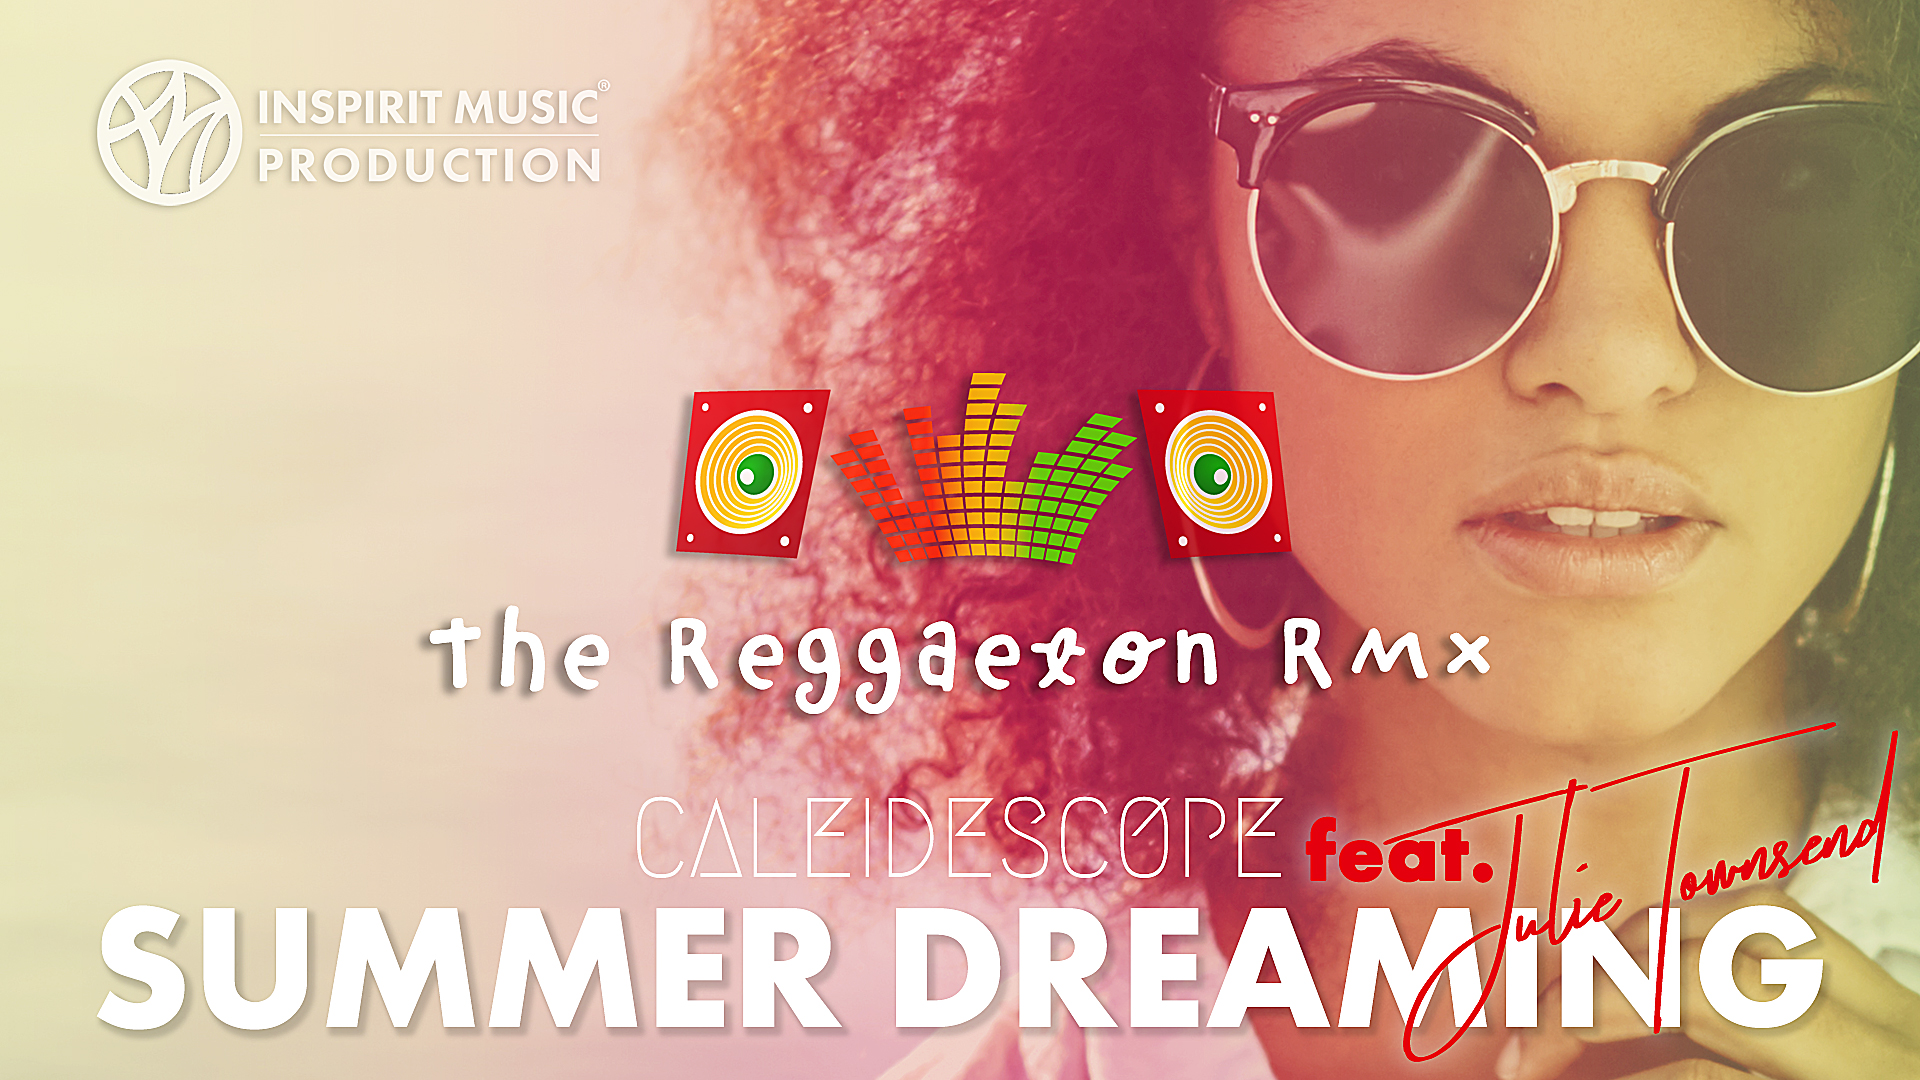 Summer Dreaming Reggaeton Youtube Cover